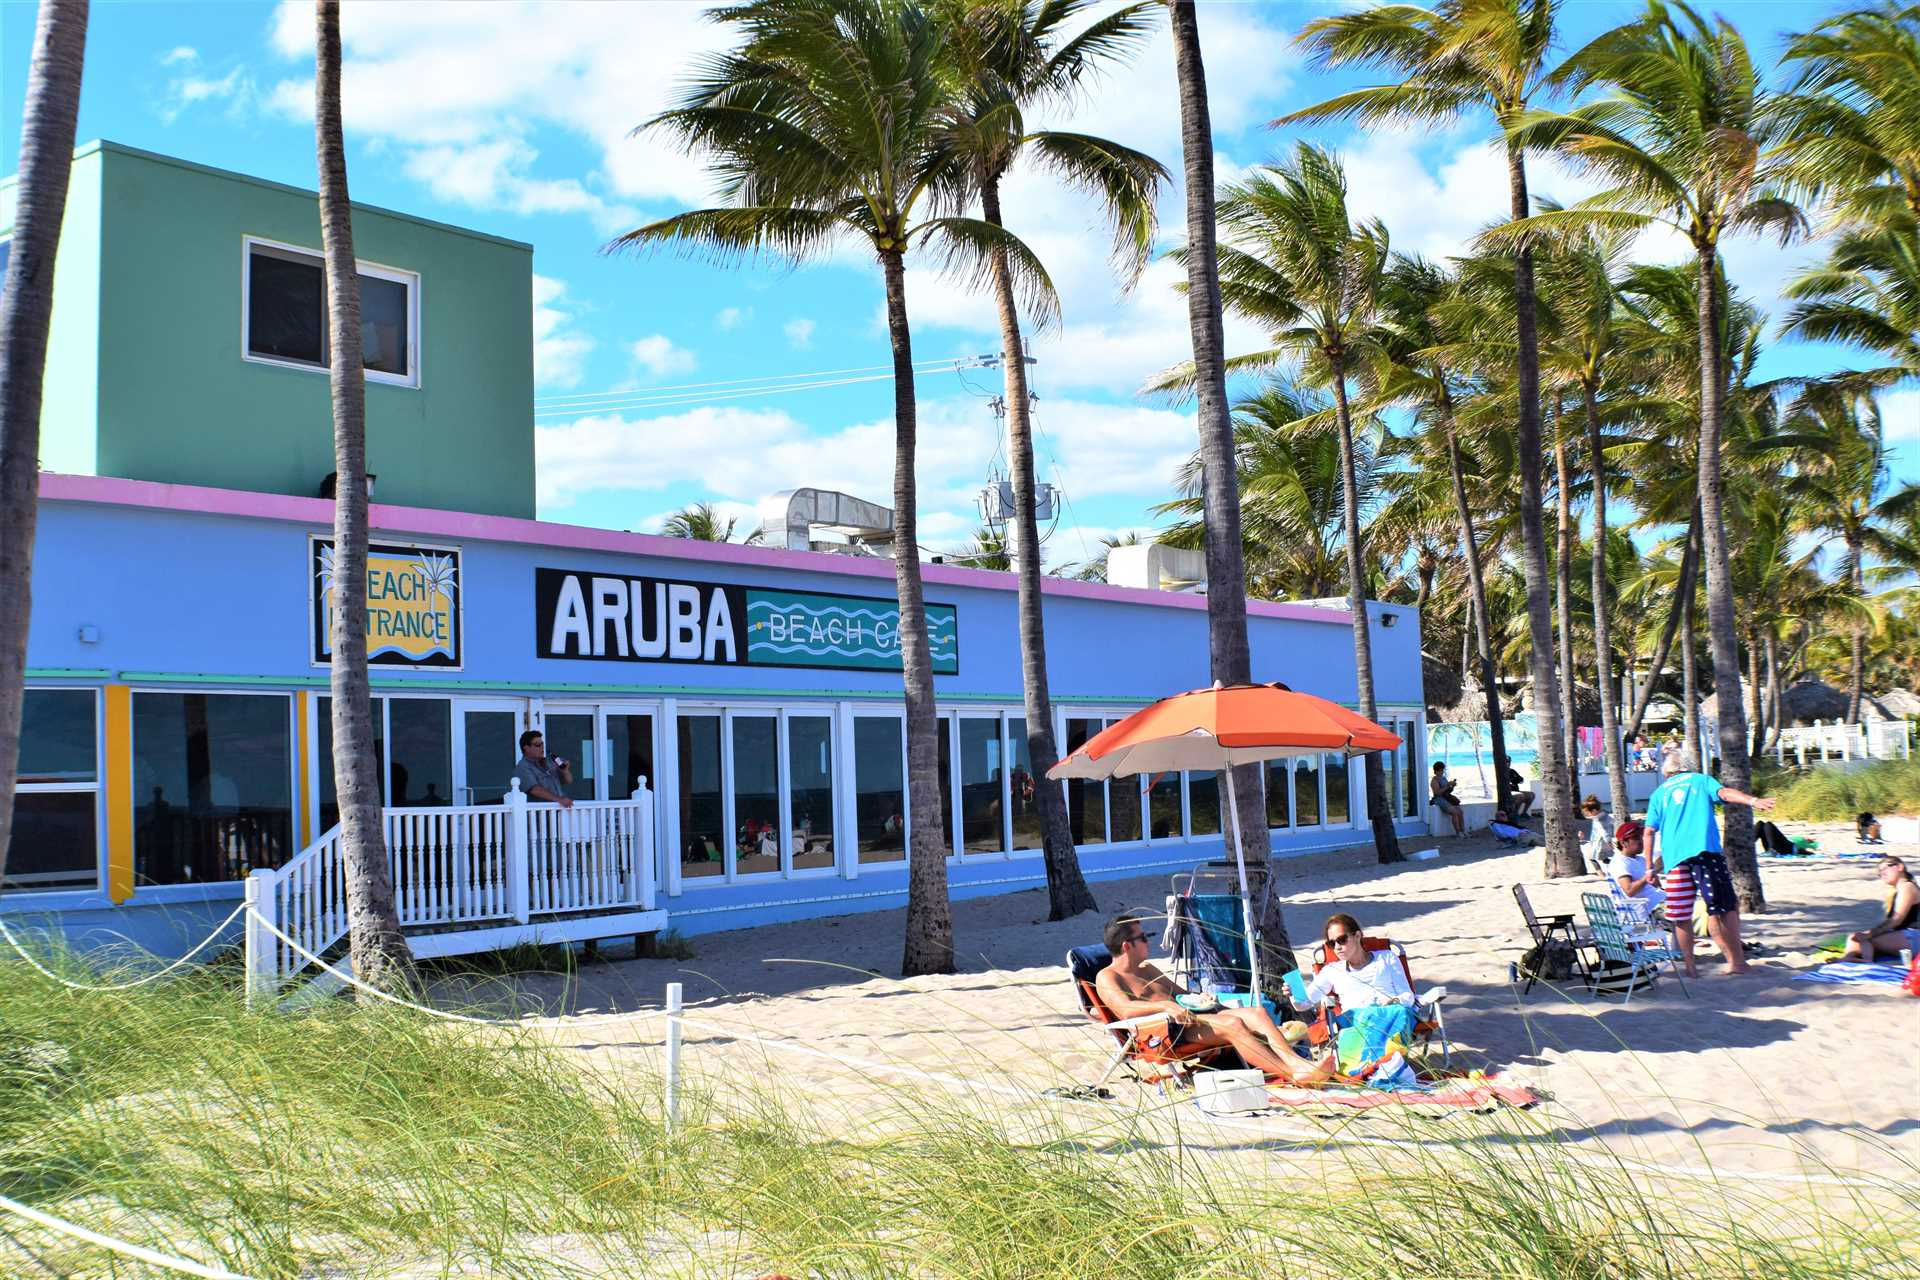 Be sure to stop at the world-famous Aruba Cafe for fabulous